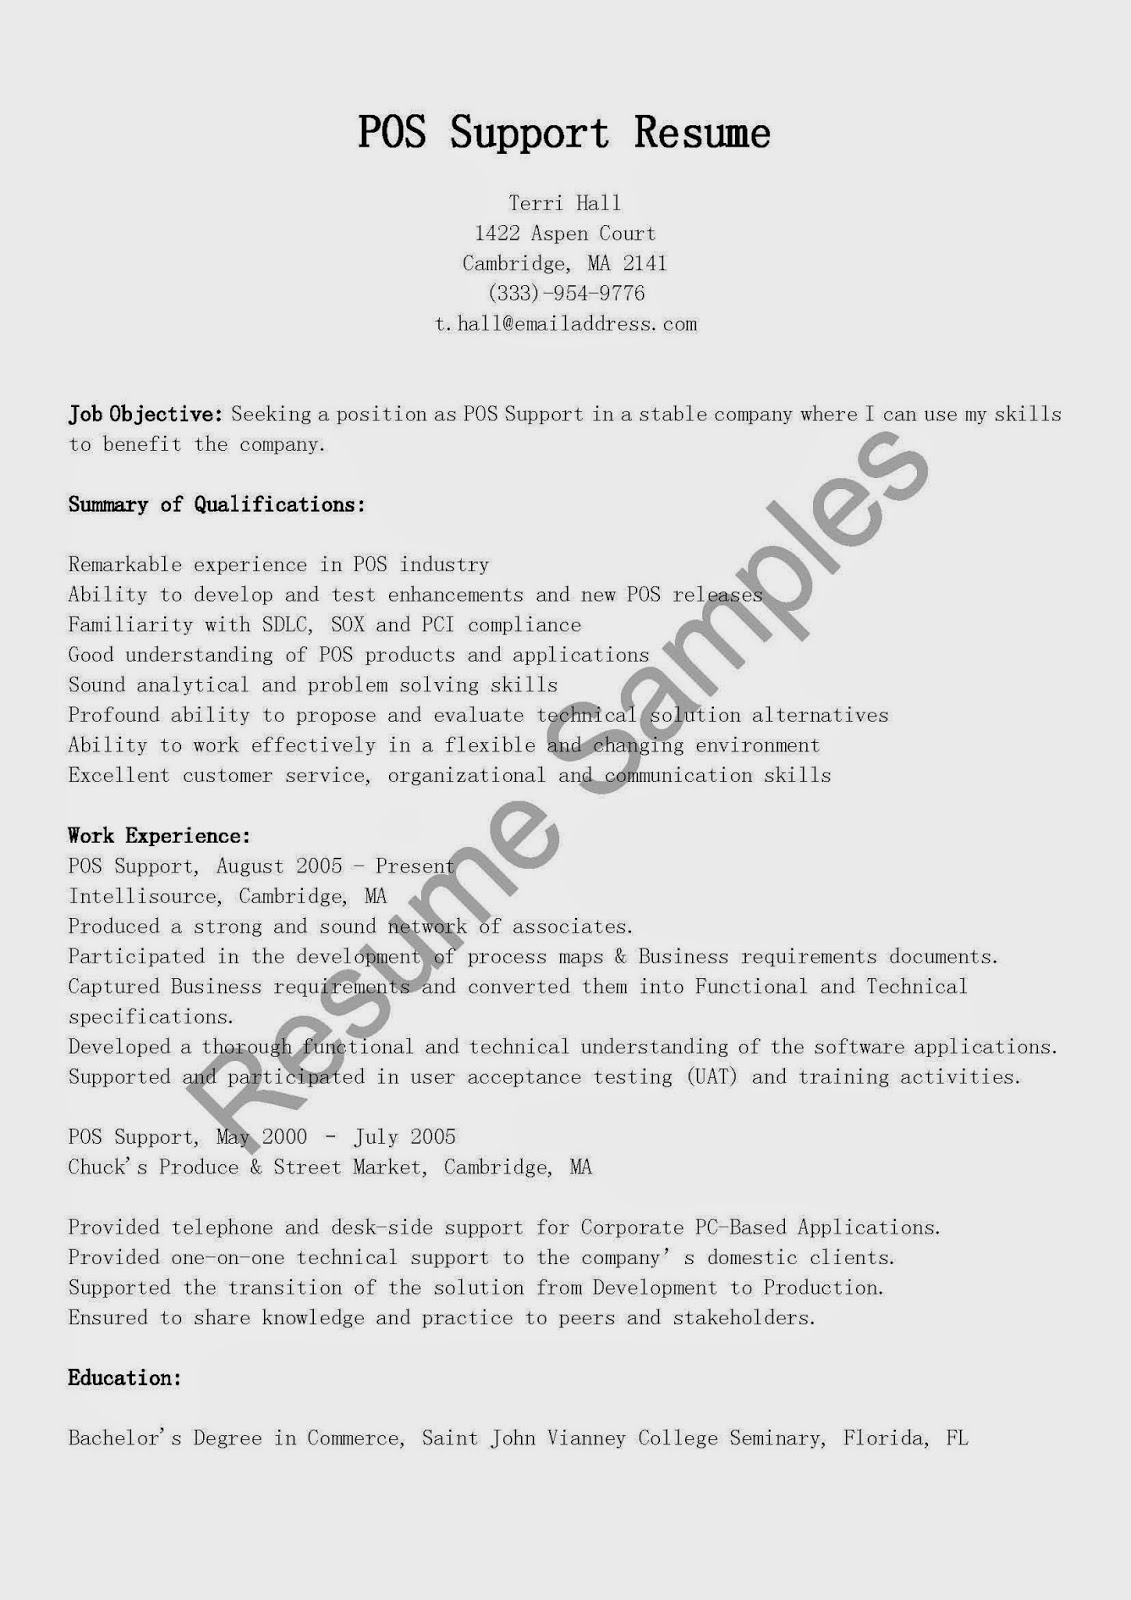 resume samples  pos support resume sample